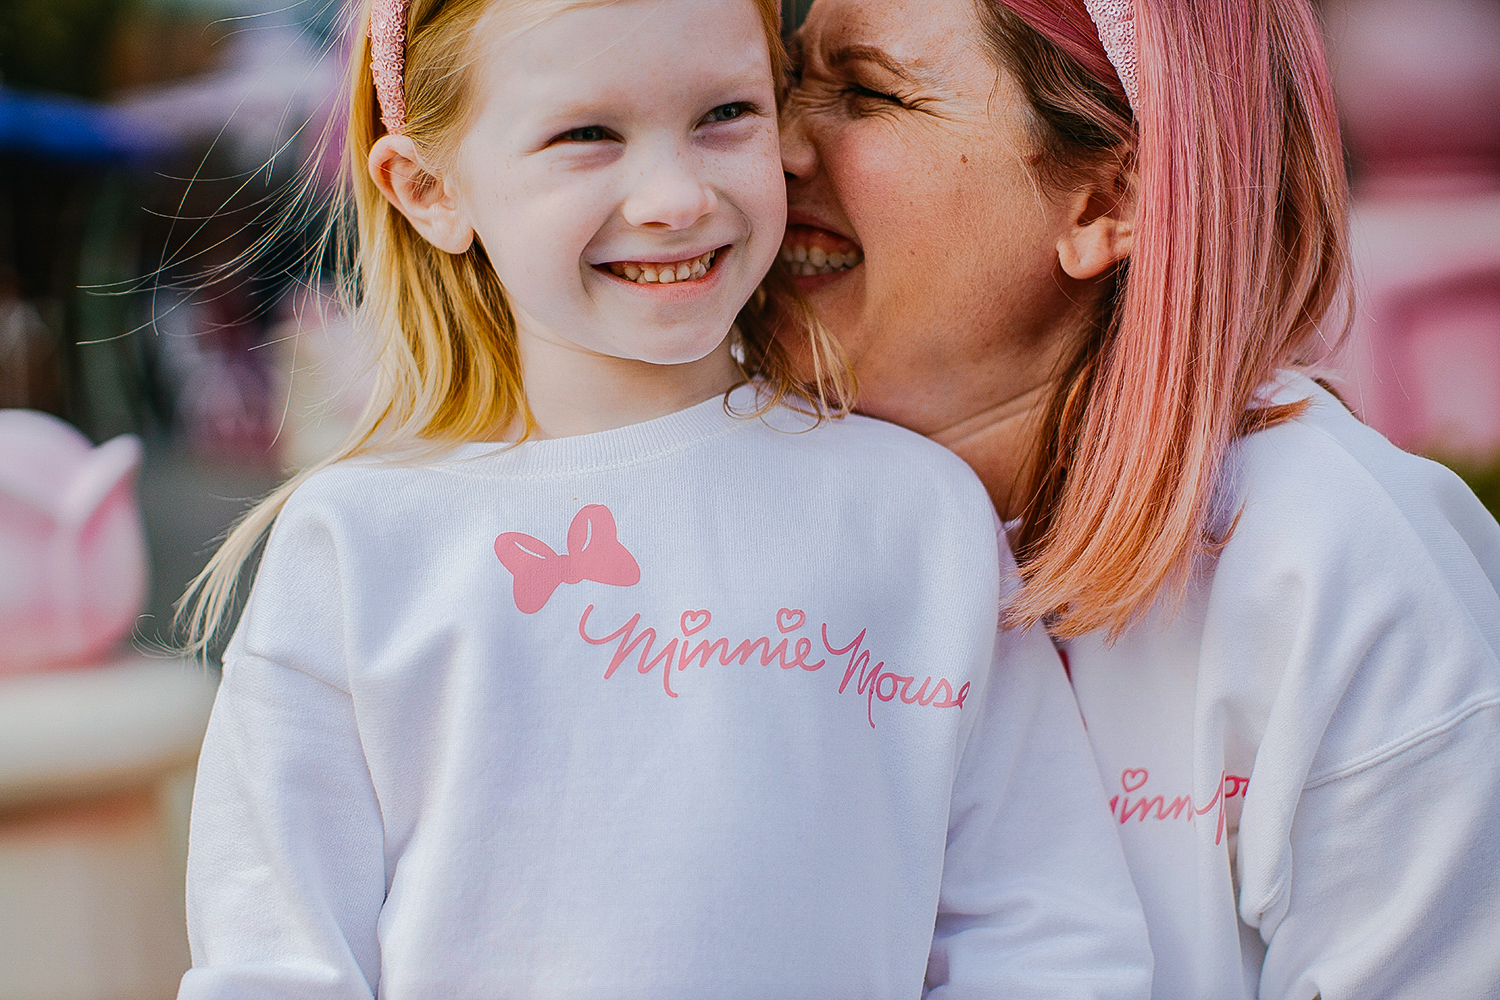 Looking for fun Disney Family Shirts? This is the ultimate guide to matching Disney shirts that aren't........super cheesy.